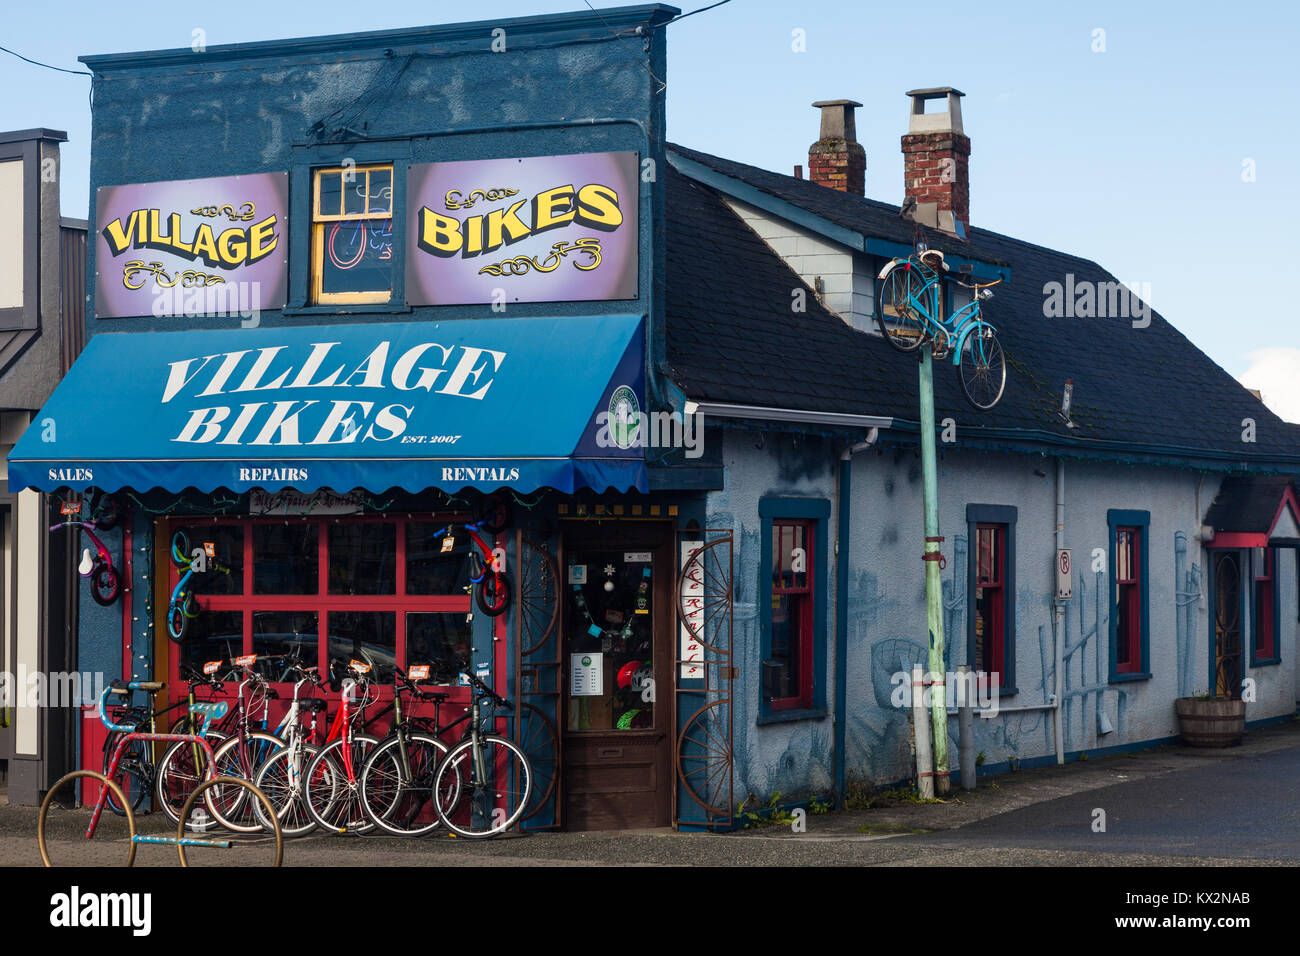 Bike Store Richmond Bike Rentals Stock Photos And Bike Rentals Stock Images Alamy